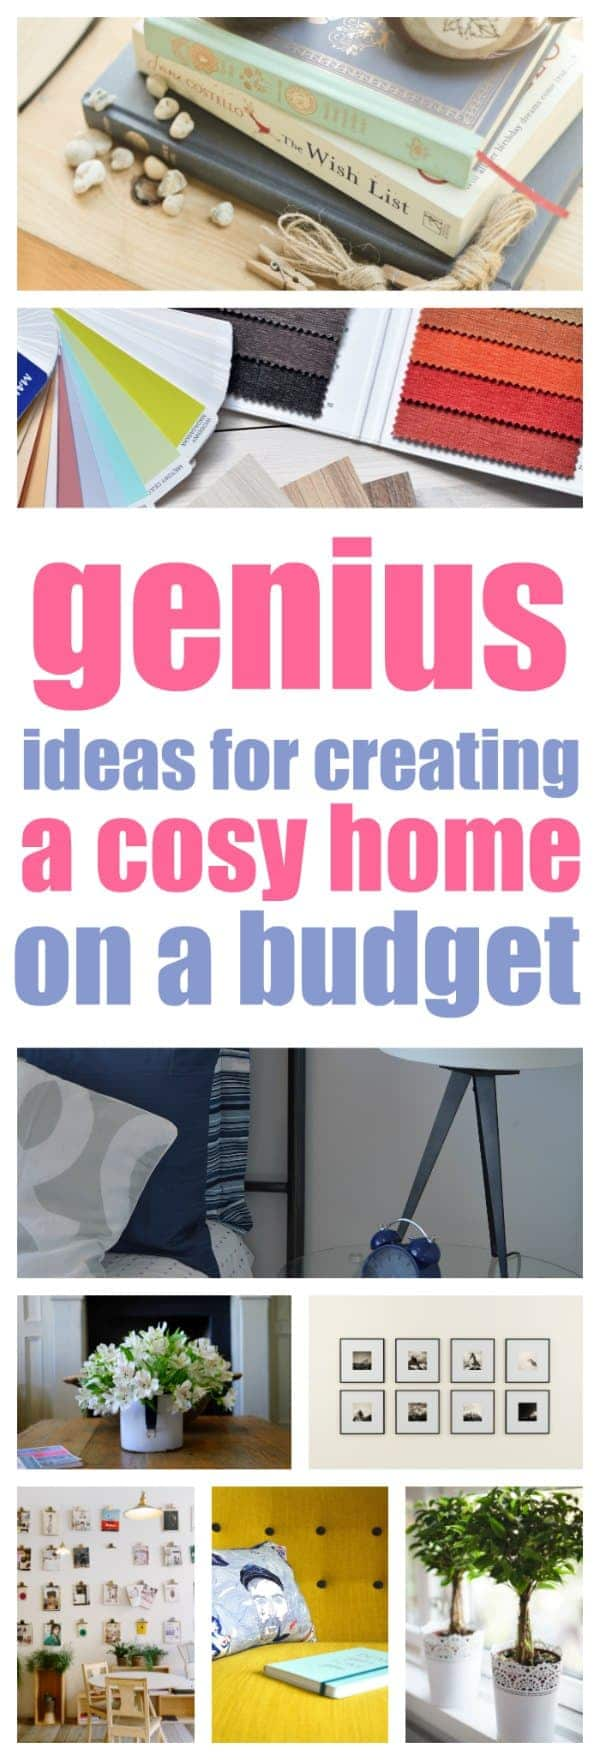 thrifty ideas that are genius ways to create a cosy home on a budget